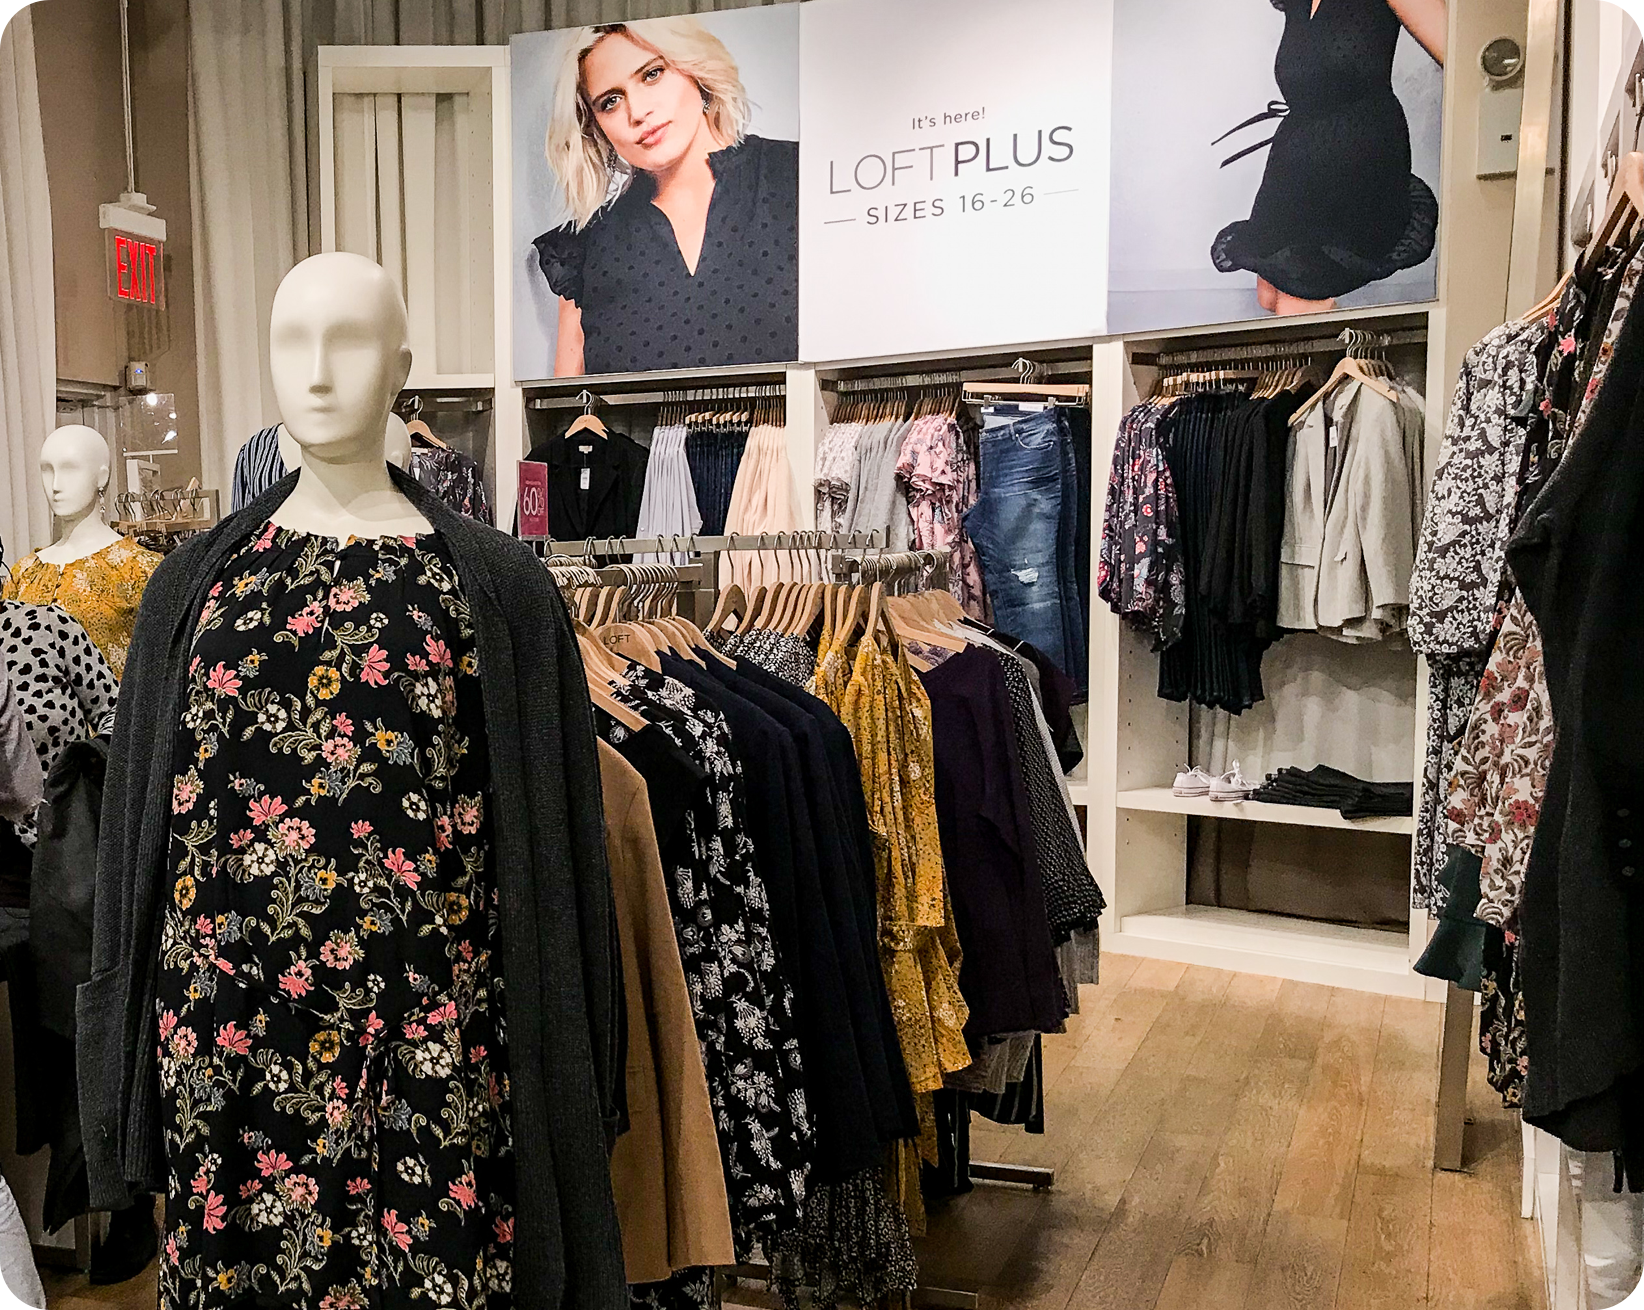 Loft Plus Size section in the back of the store